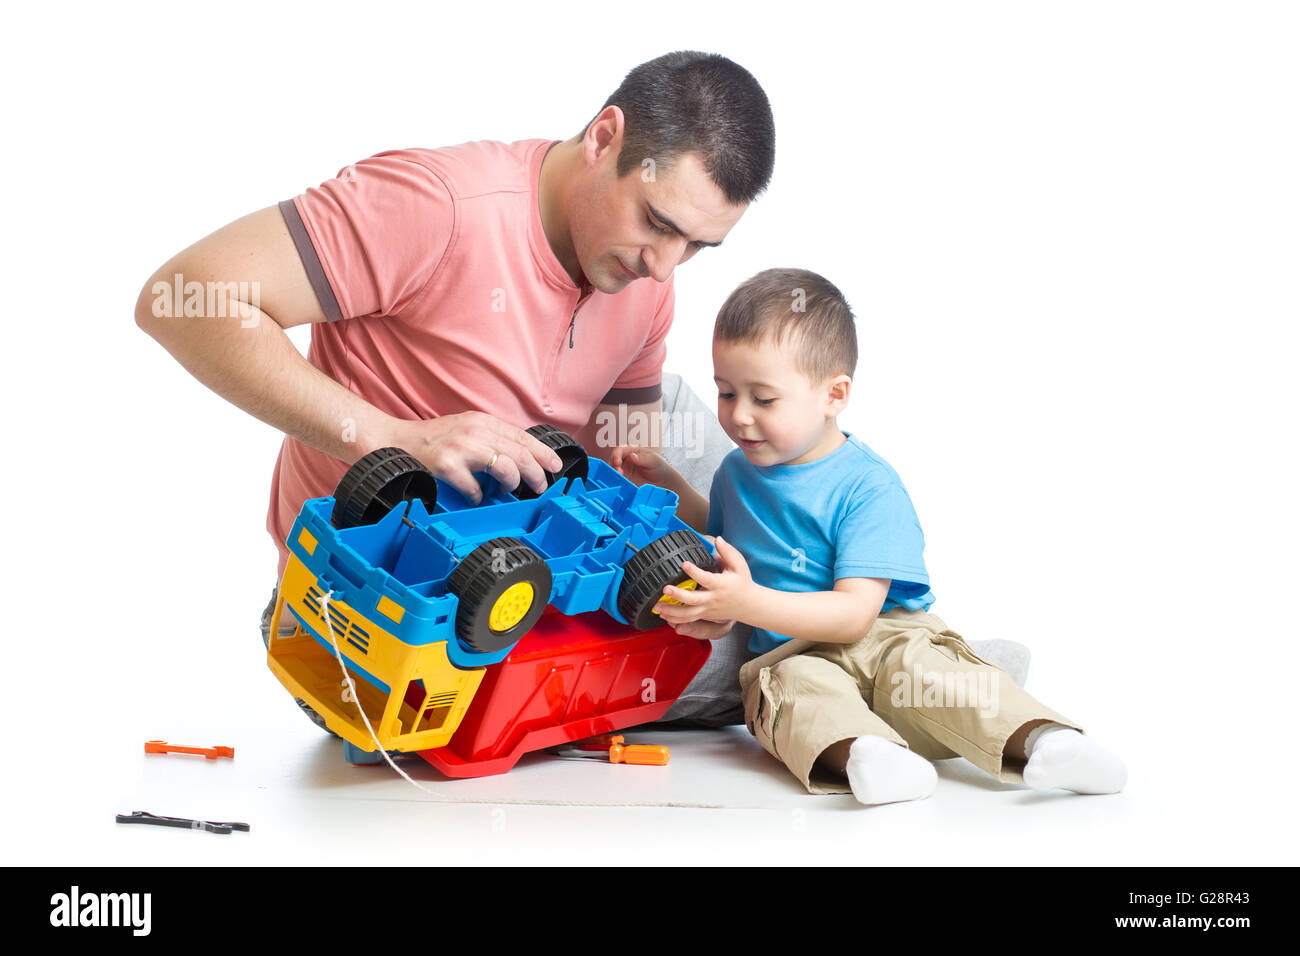 kid boy and his daddy fixing toy trunk - Stock Image